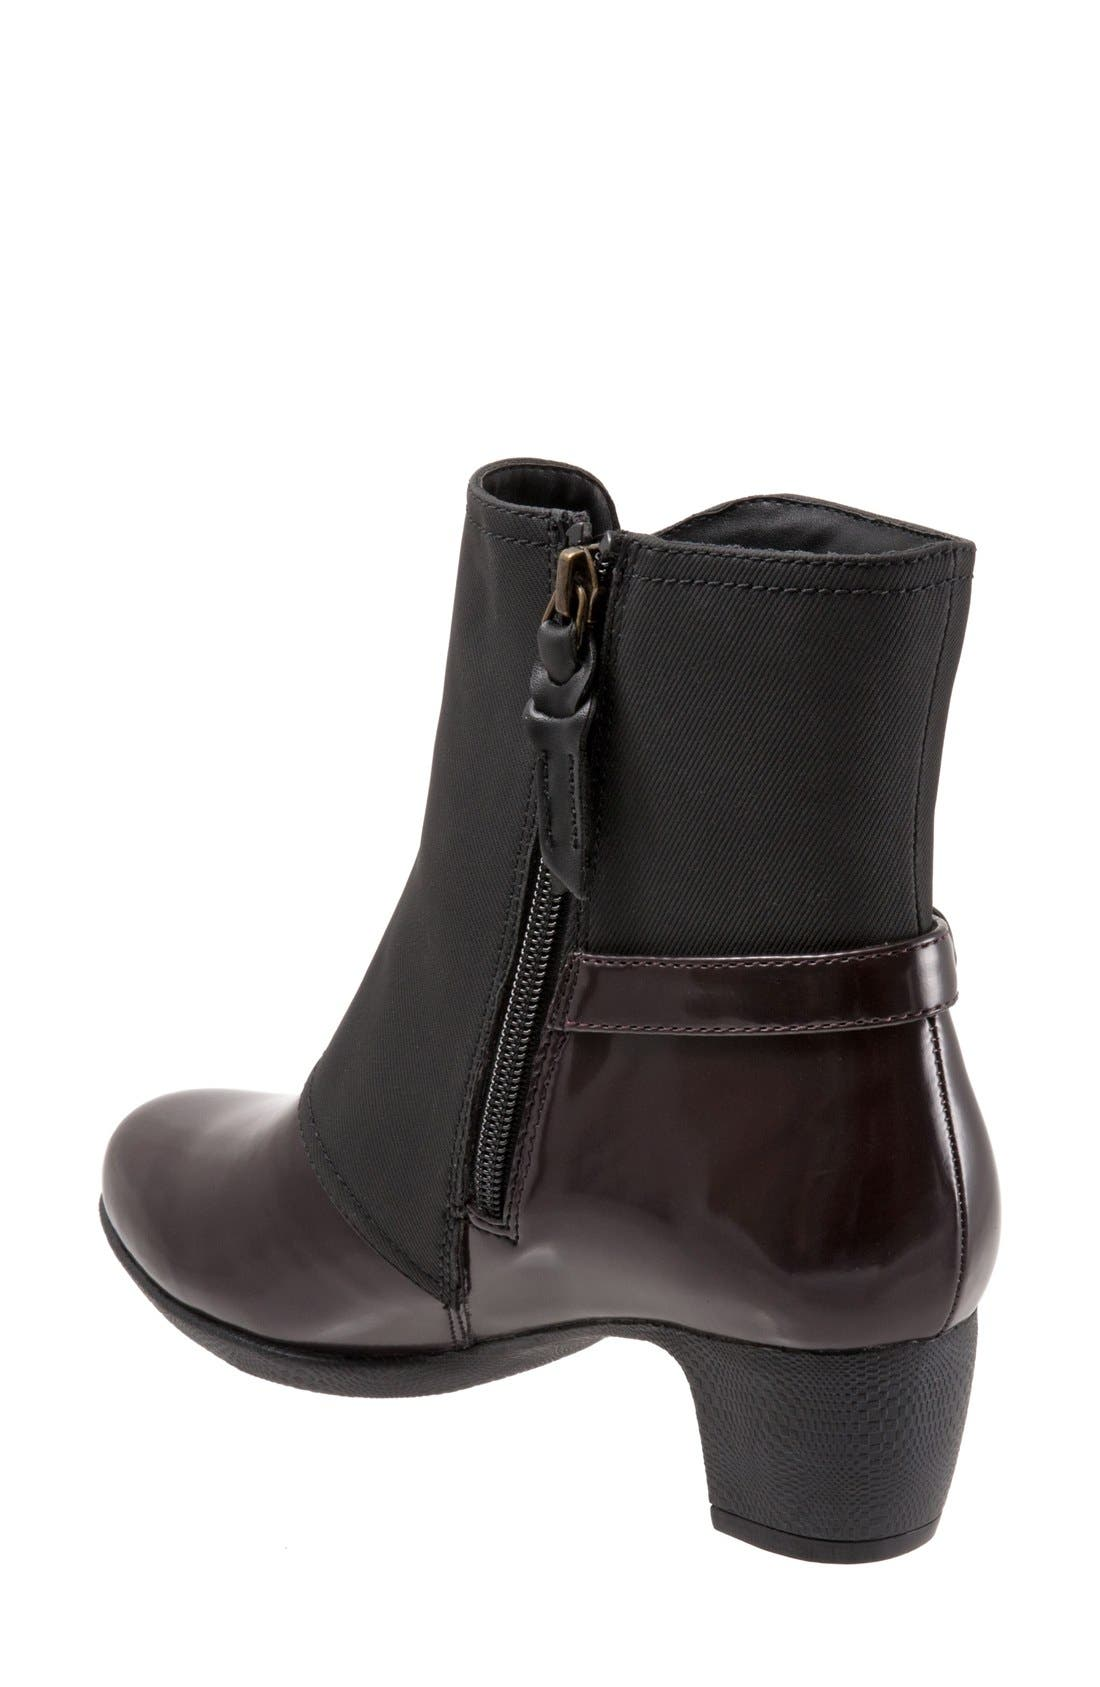 'Puddles' Waterproof Bootie,                             Alternate thumbnail 5, color,                             642